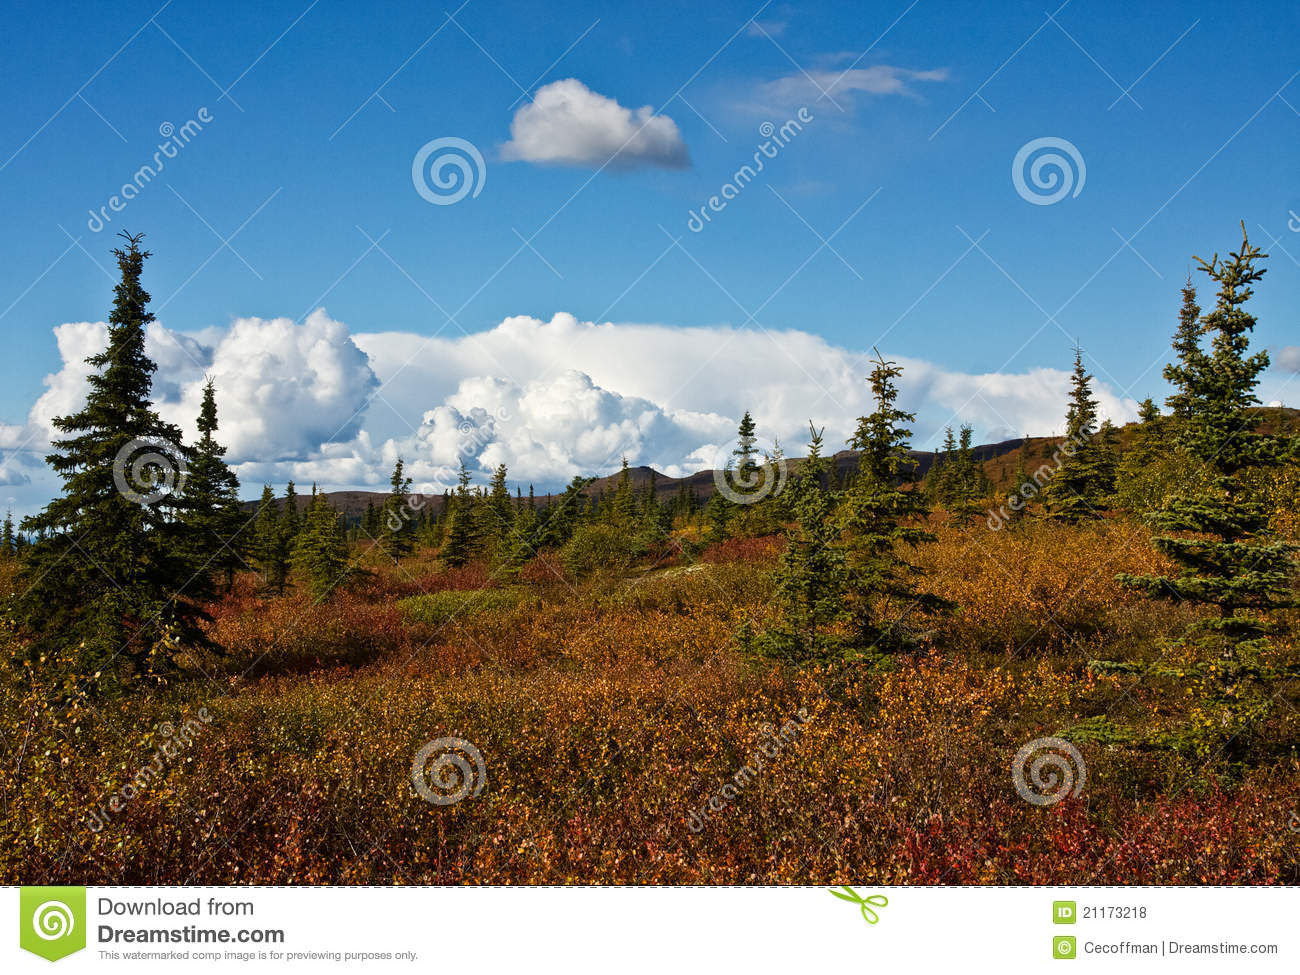 Alaska39;s Wilderness In Fall Royalty Free Stock Photos  Image